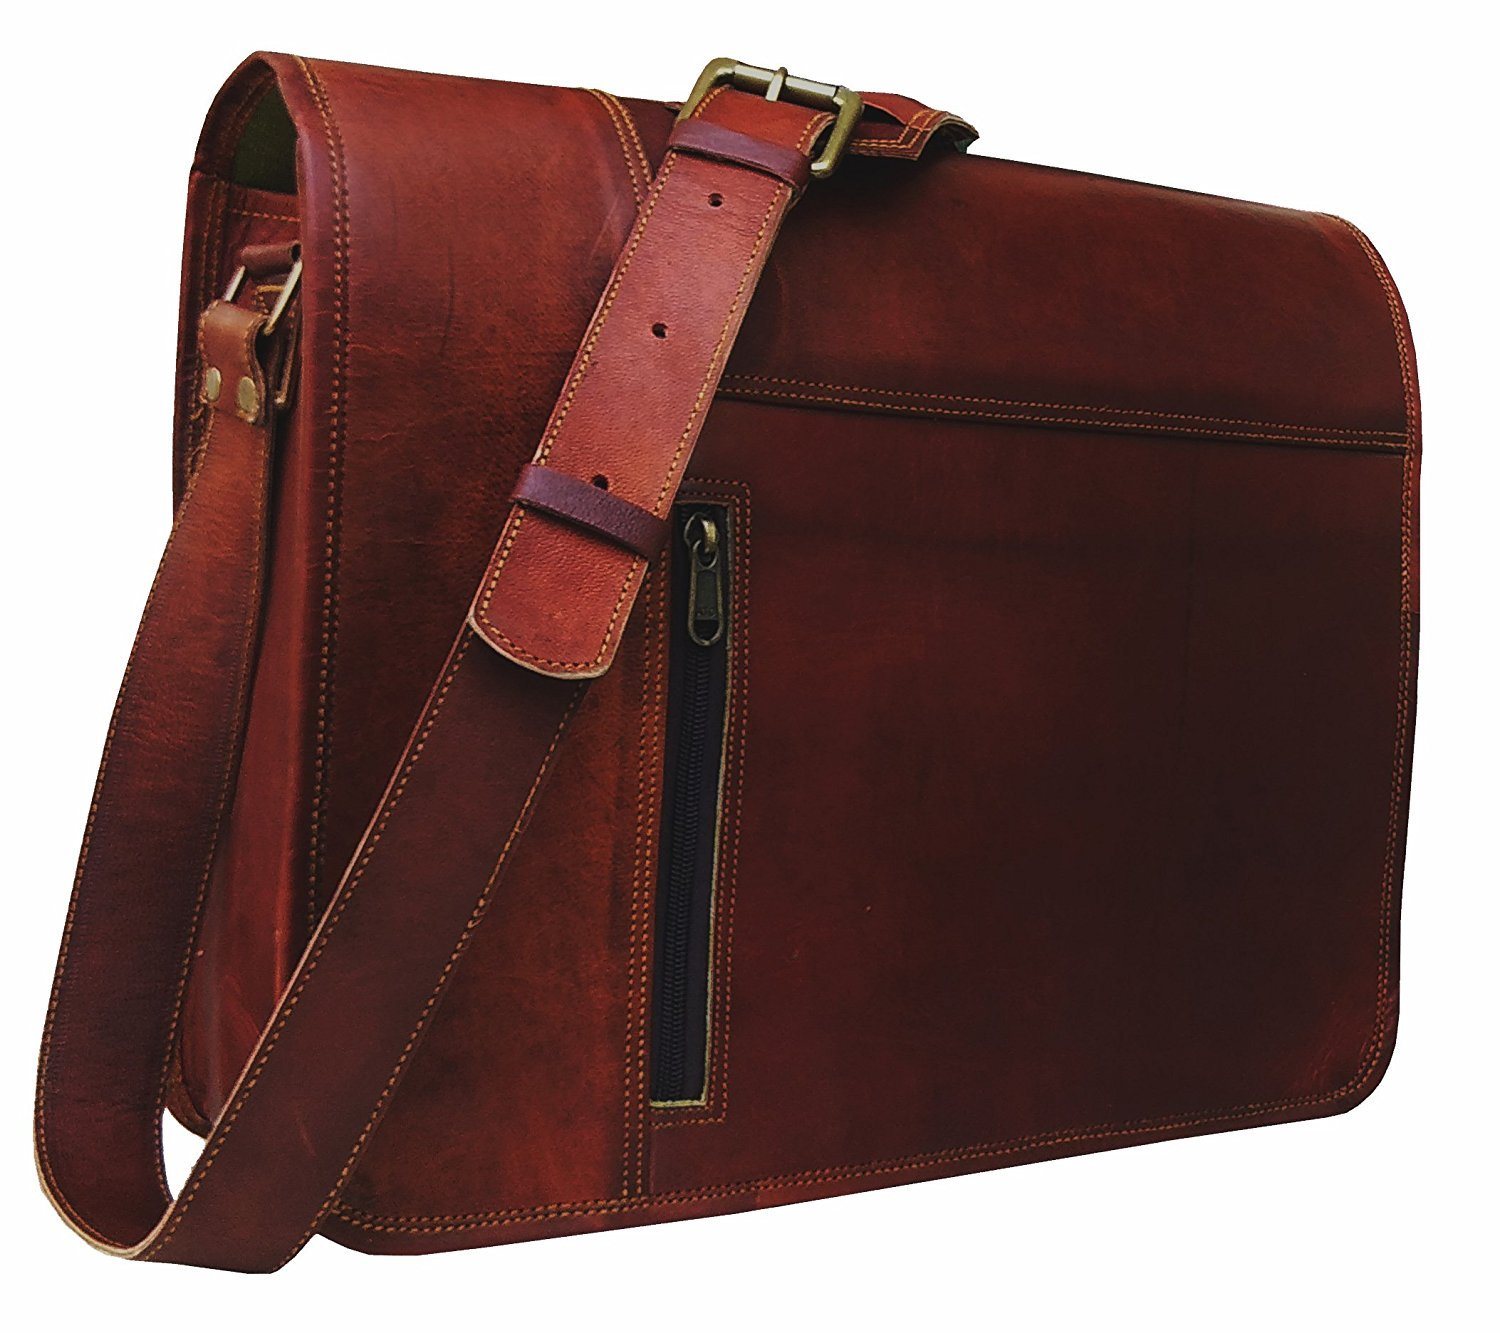 Leather Laptop Messenger Bag Vintage briefcase Satchel for Men and Women- 16 Inch by VINTAGE COUTURE